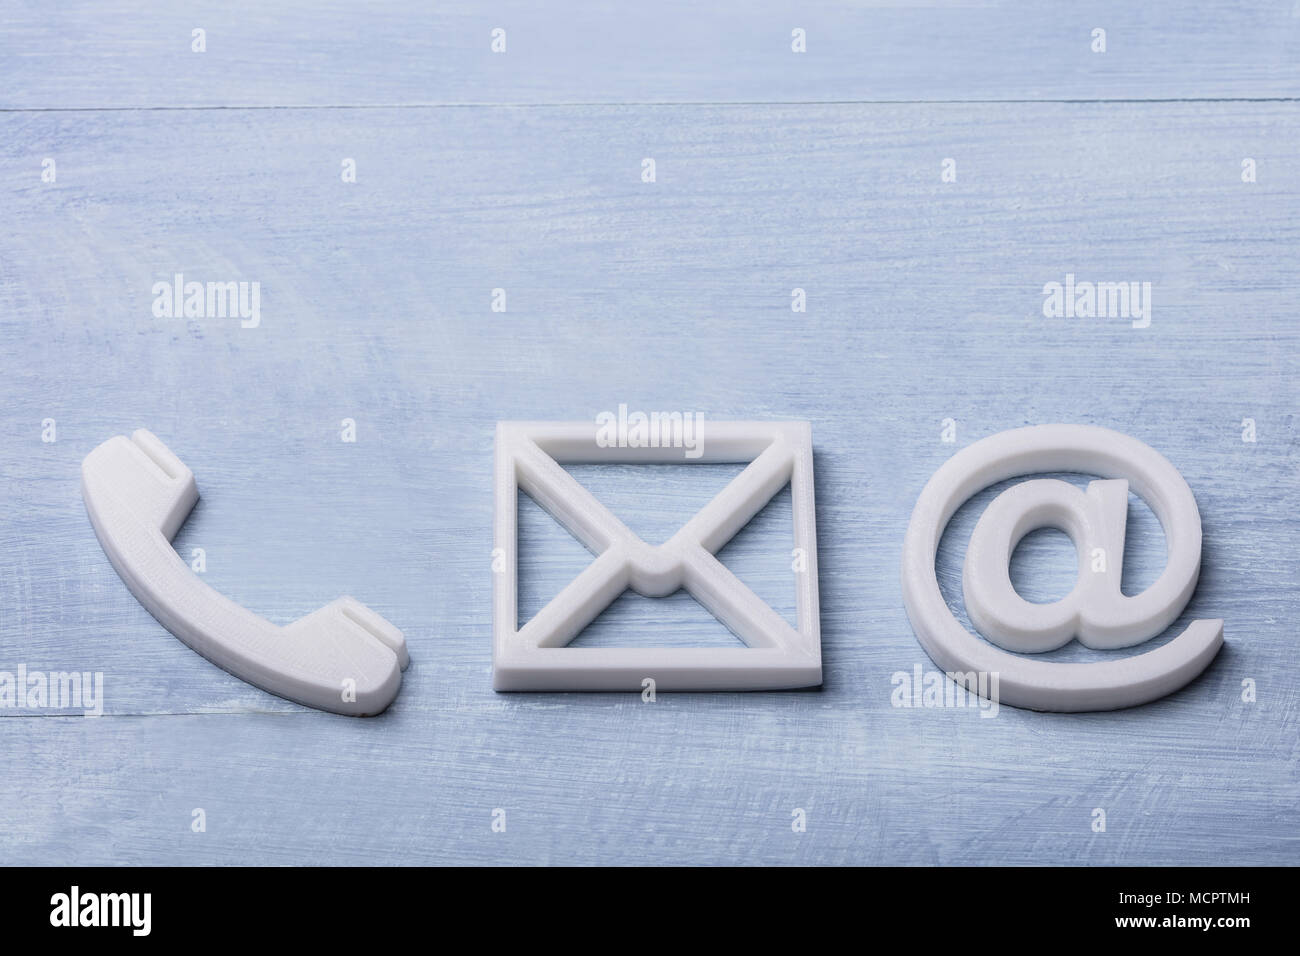 High Angle View Of White Phone, Email and Post Icons Isolated On Wooden Plank Stock Photo